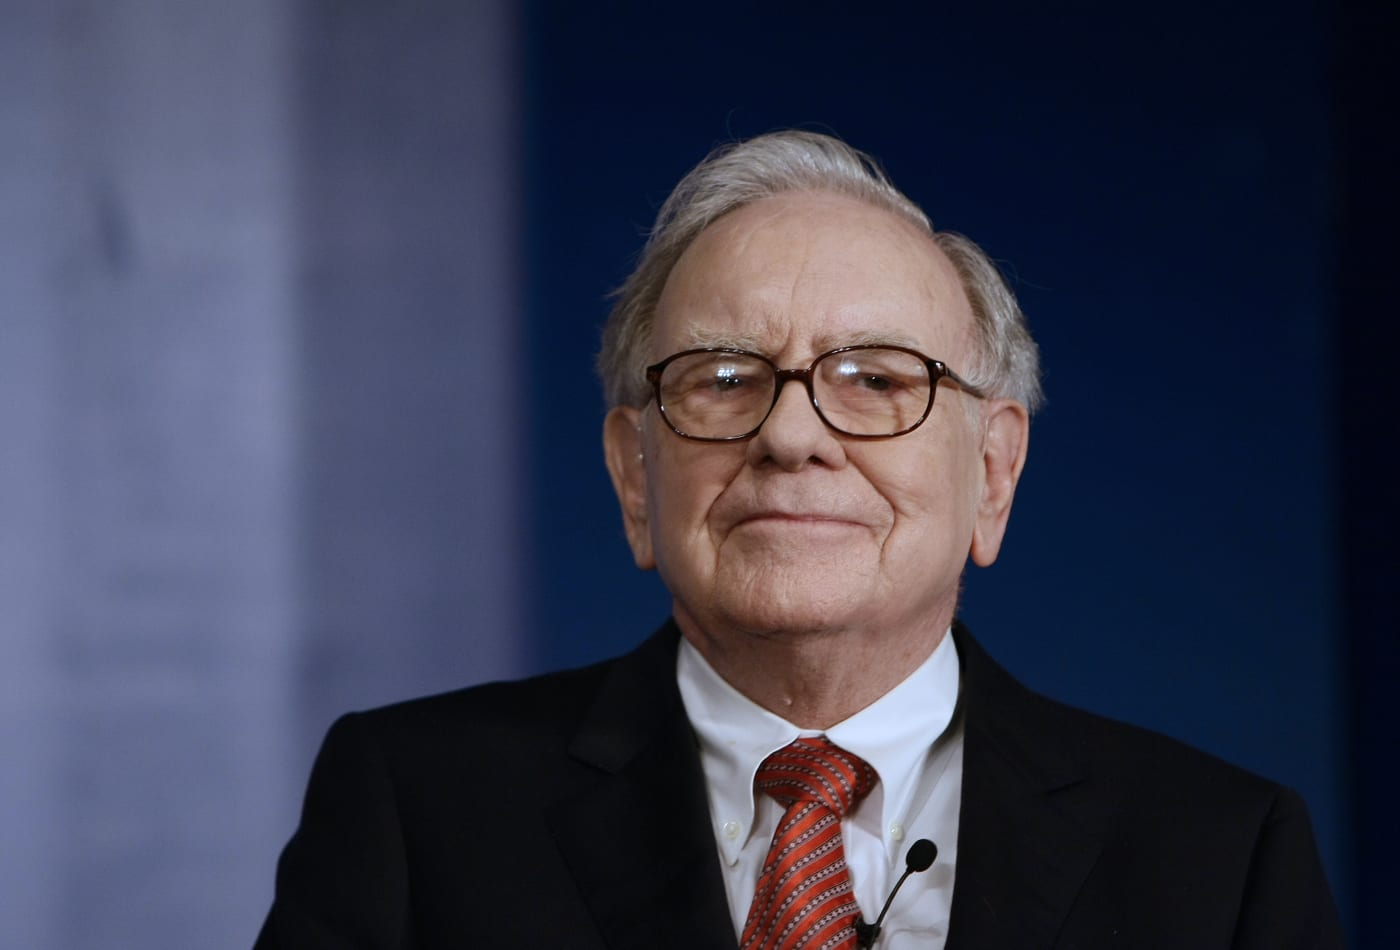 Billionaire Warren Buffett just turned 89—here are 6 pieces of wisdom from the investing legend